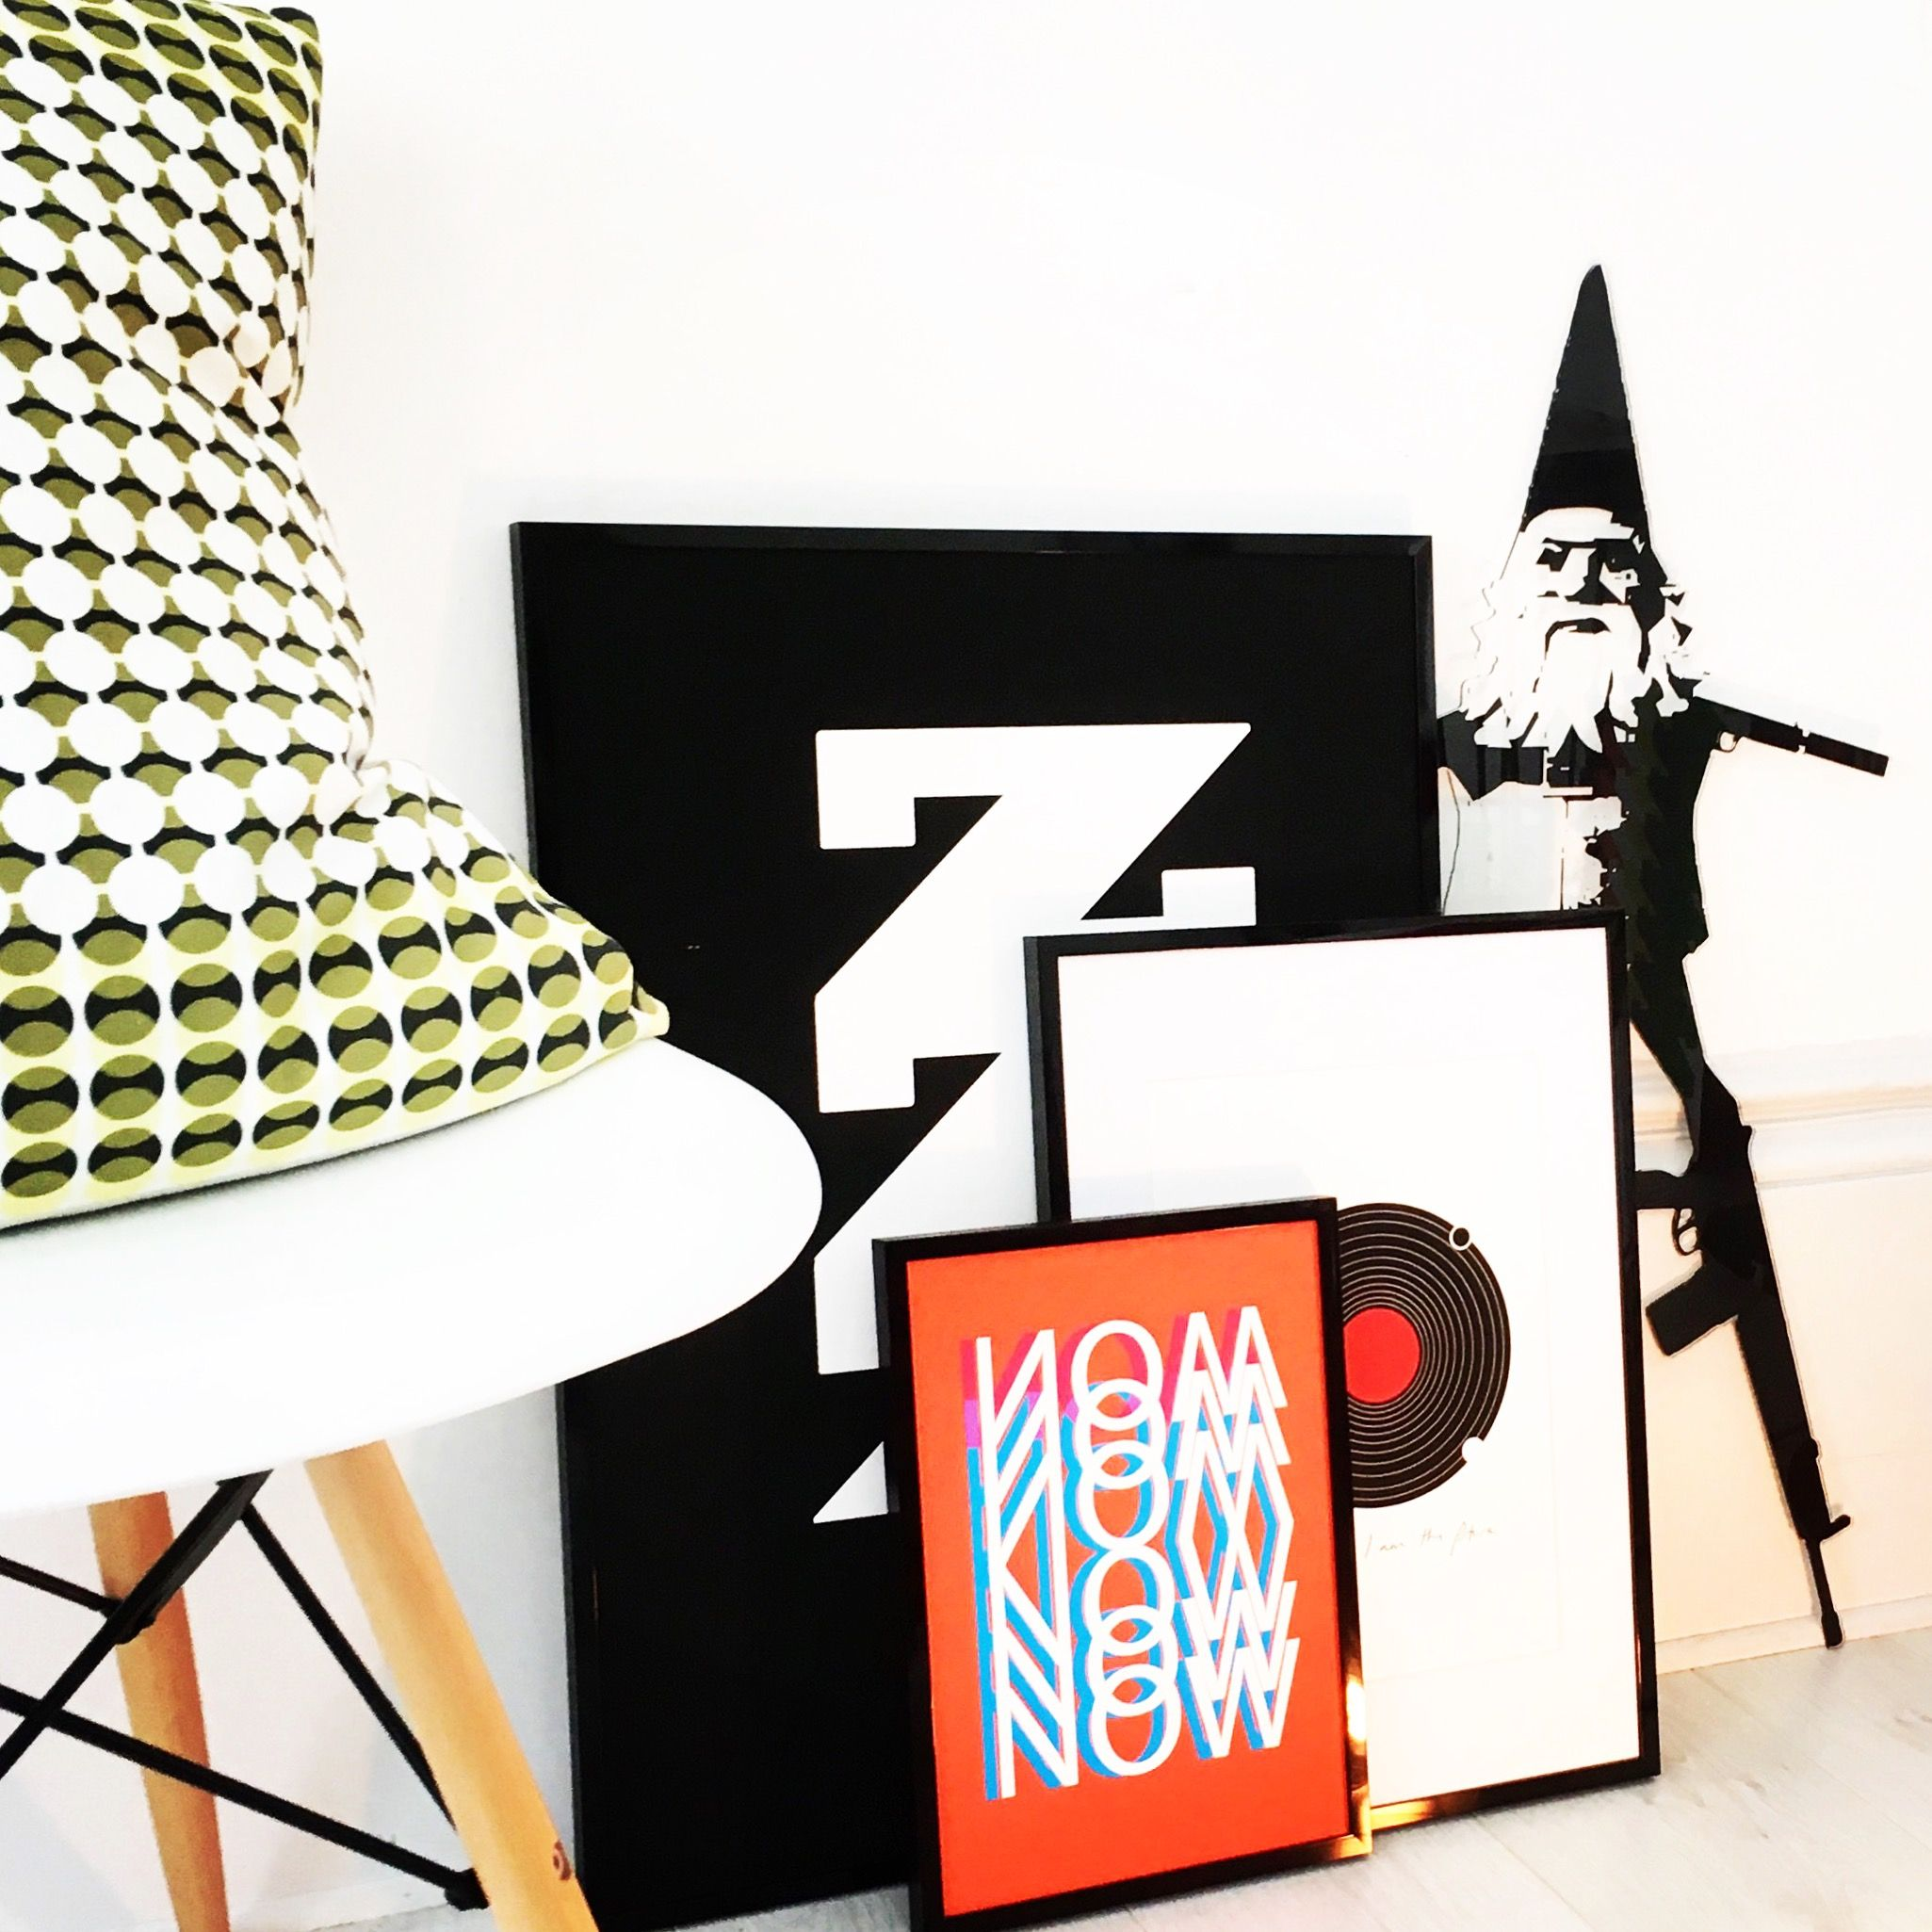 A collection of our popular prints 'NOW', 'ZZzz Arthouse' and 'Future Bright', all framed and looking fab.